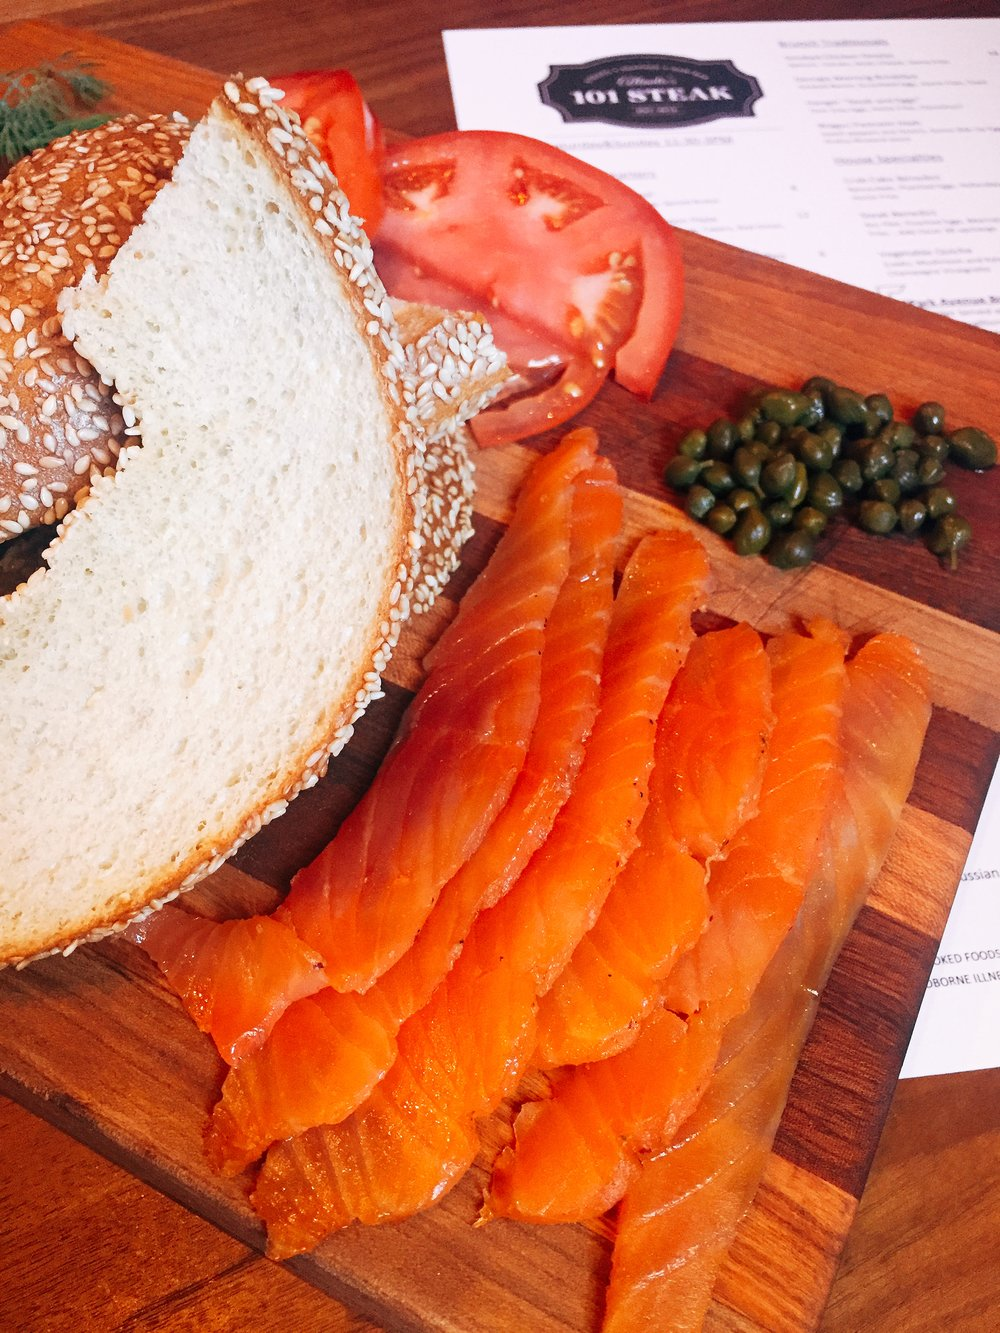 House smoked salmon board